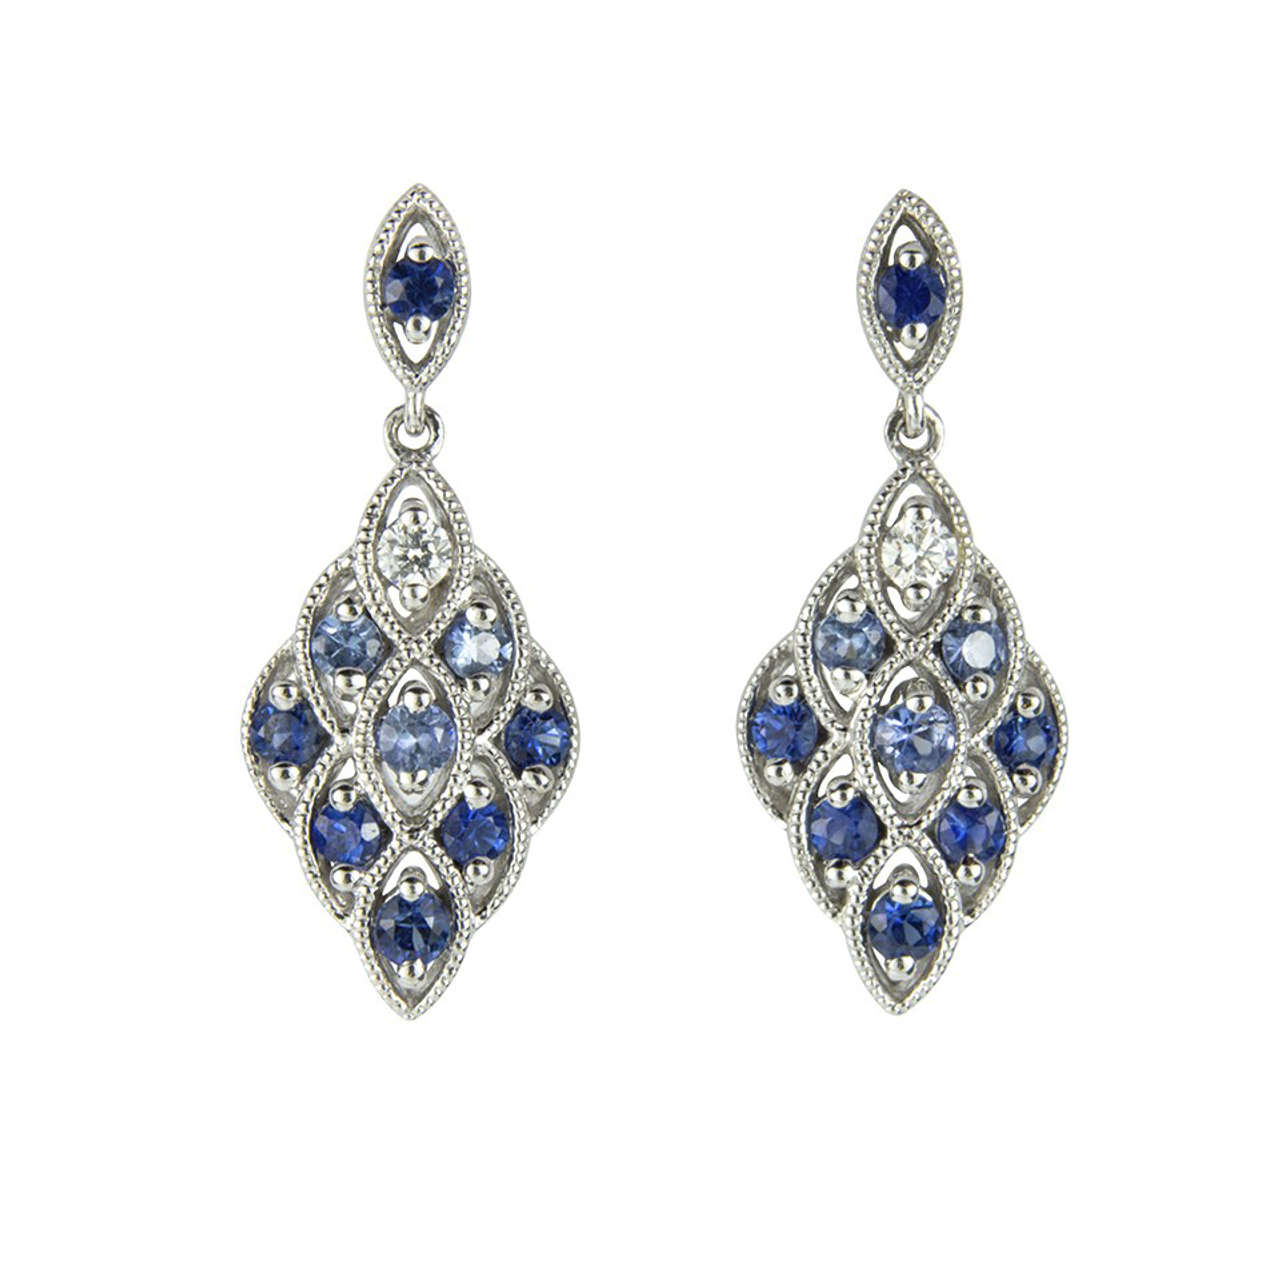 18ct White Gold Sapphire & Diamond Lace Earrings